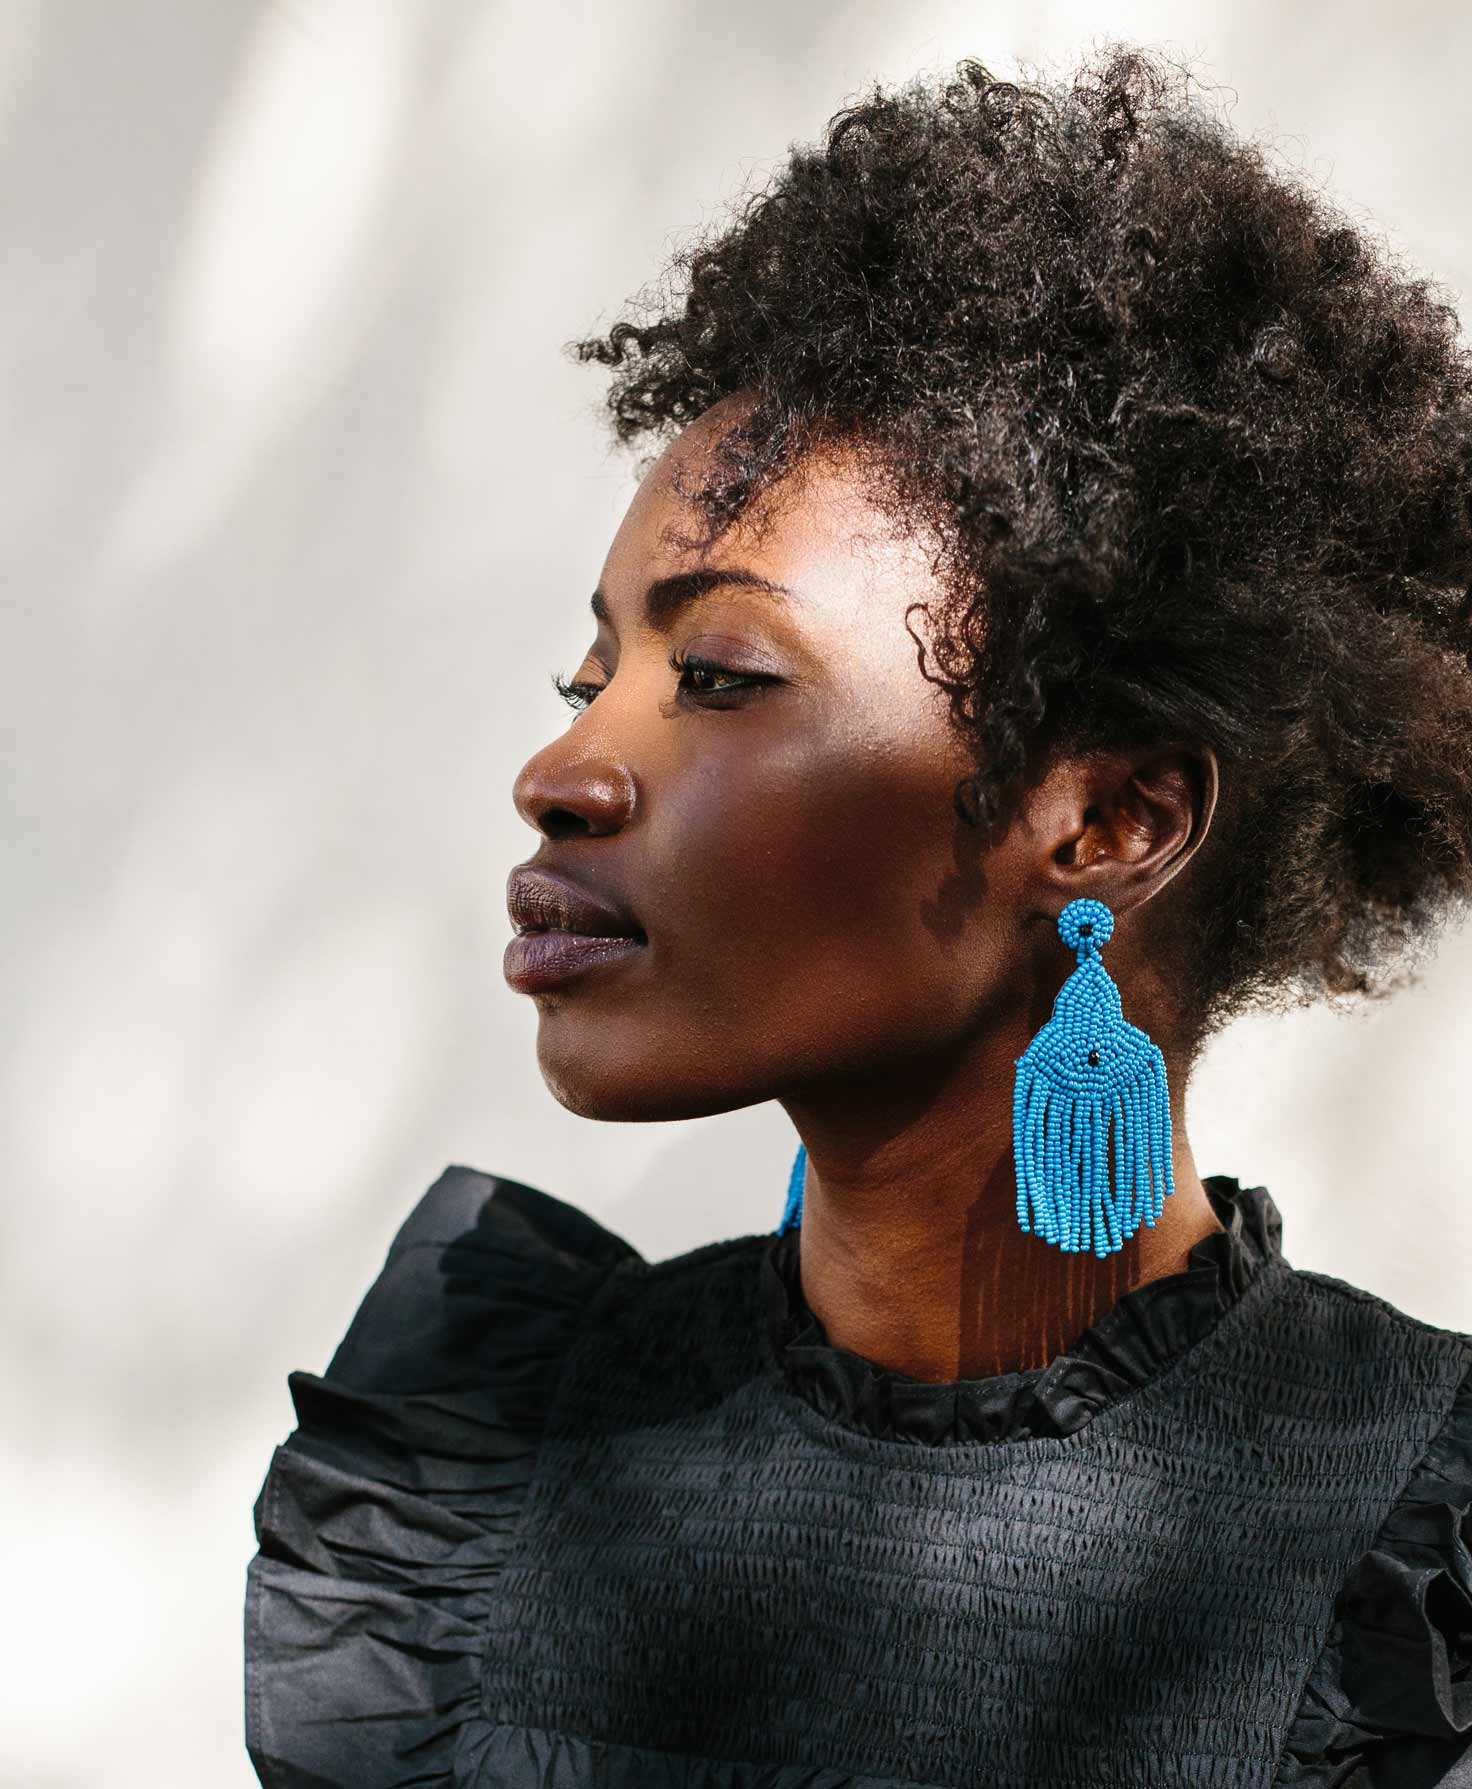 A model wears the Enthusiast Earrings, which shine in the sunlight. She wears a frilly black top, creating a strong contrast with the bright blue earrings.